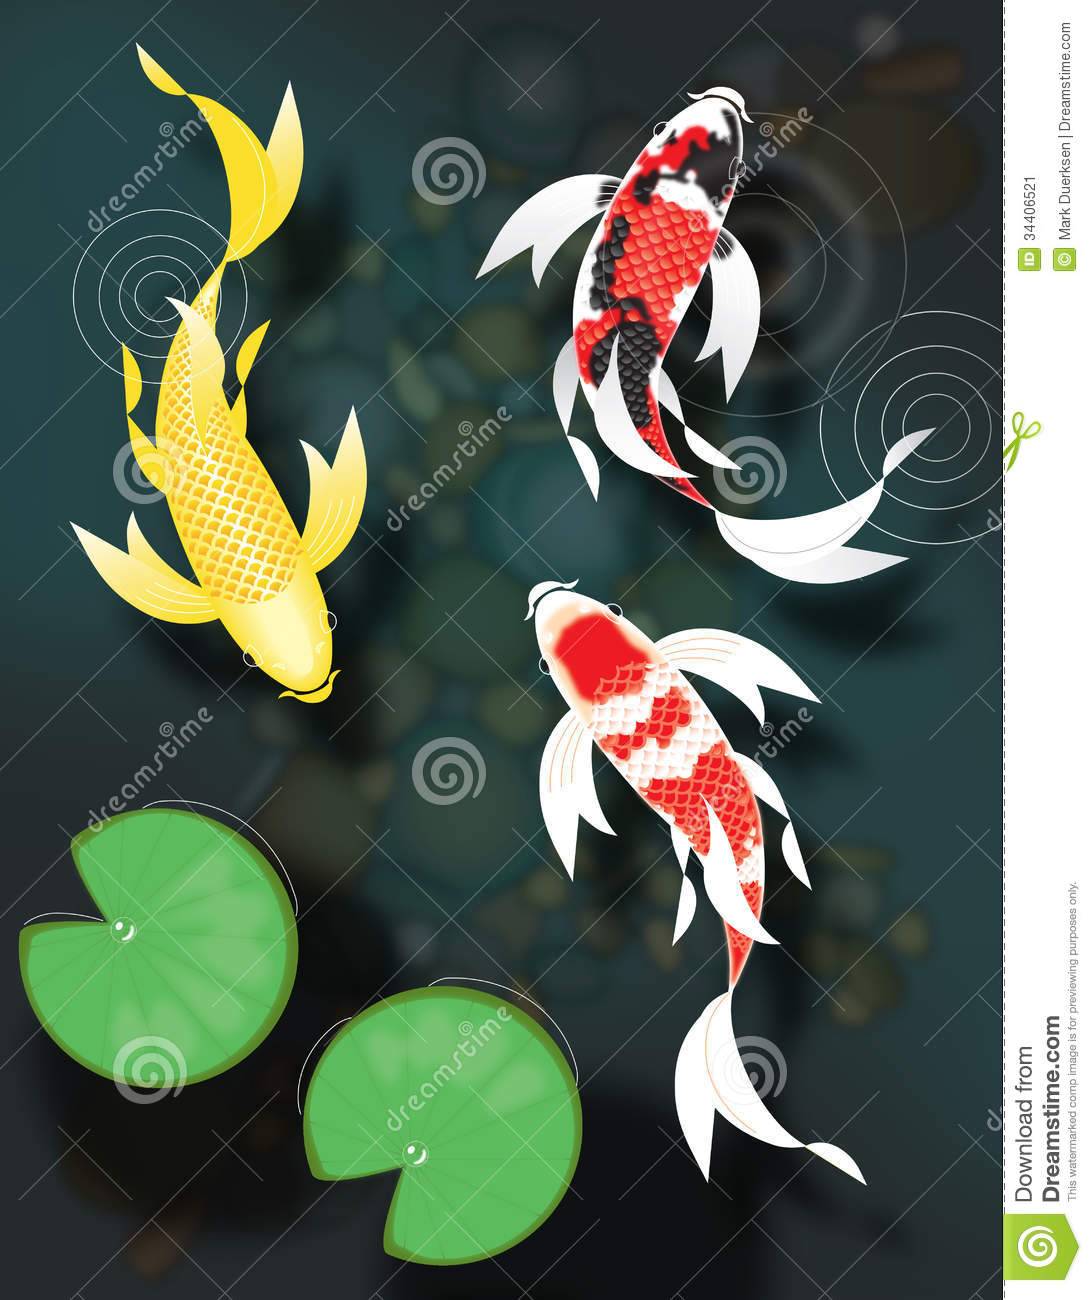 Butterfly koi swimming in pond stock illustration for All black koi fish